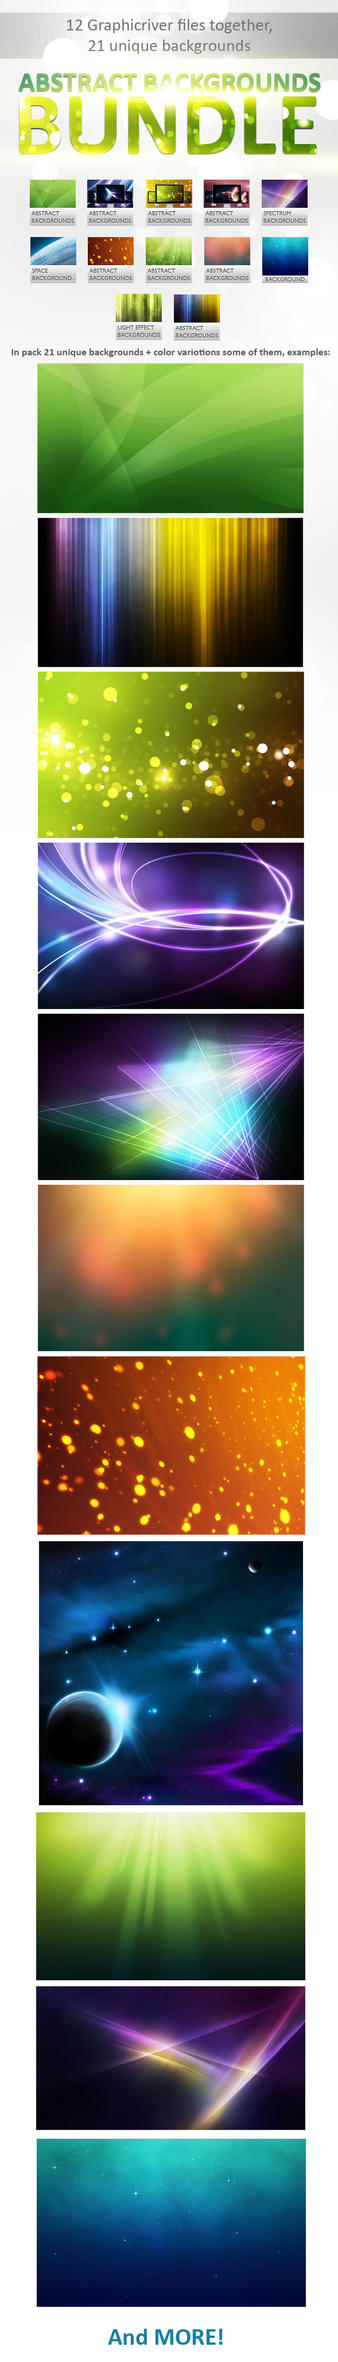 Abstract Backgrounds Bundle by M3-f-web